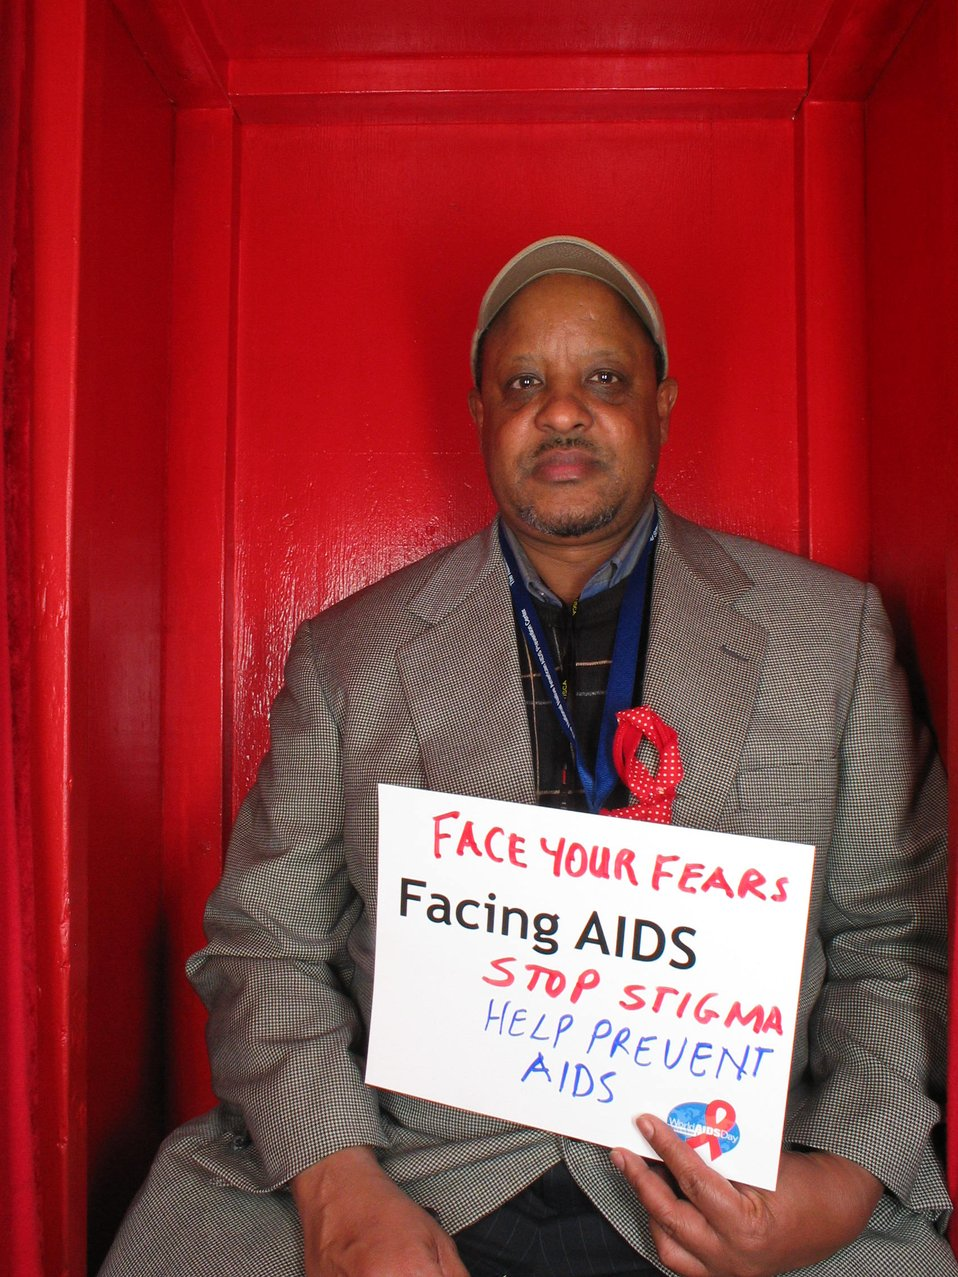 Face your fears. Facing AIDS stop stigma. Help prevent AIDS